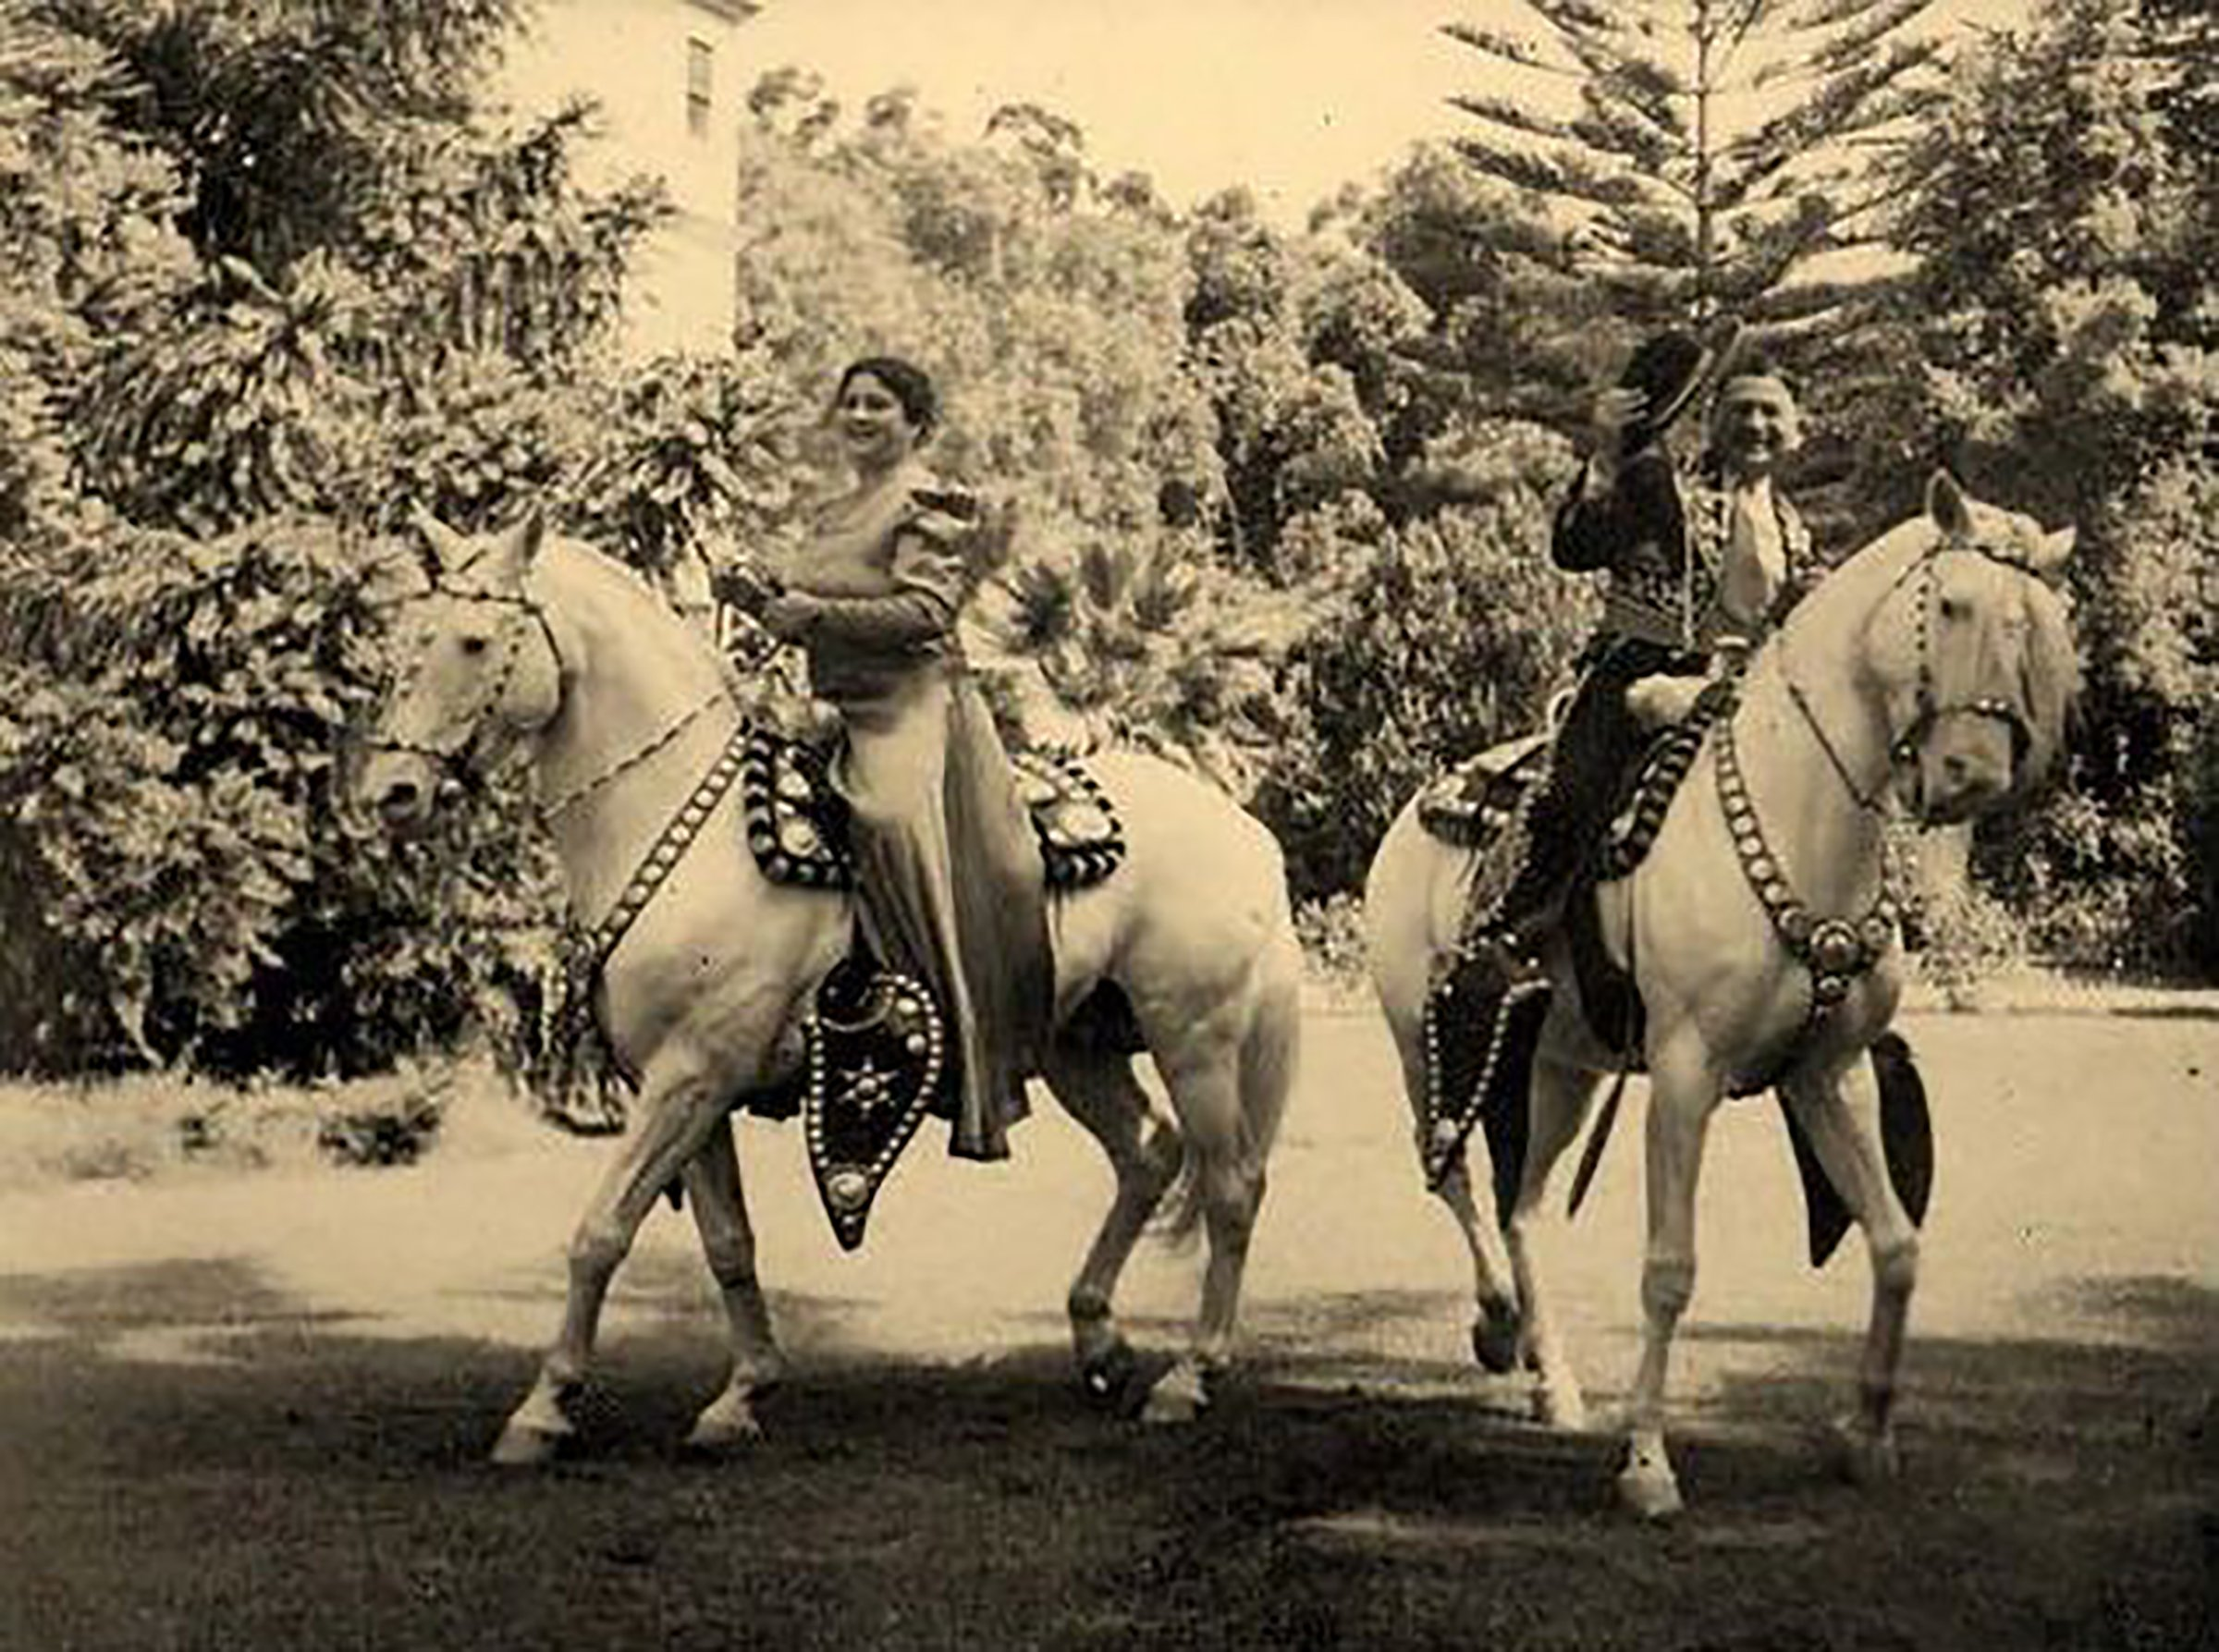 Were Camarillo White Horses In Camarillos 2020 Christmas Parade The legacy of the rare and proud Camarillo White horse breed | AGDAILY